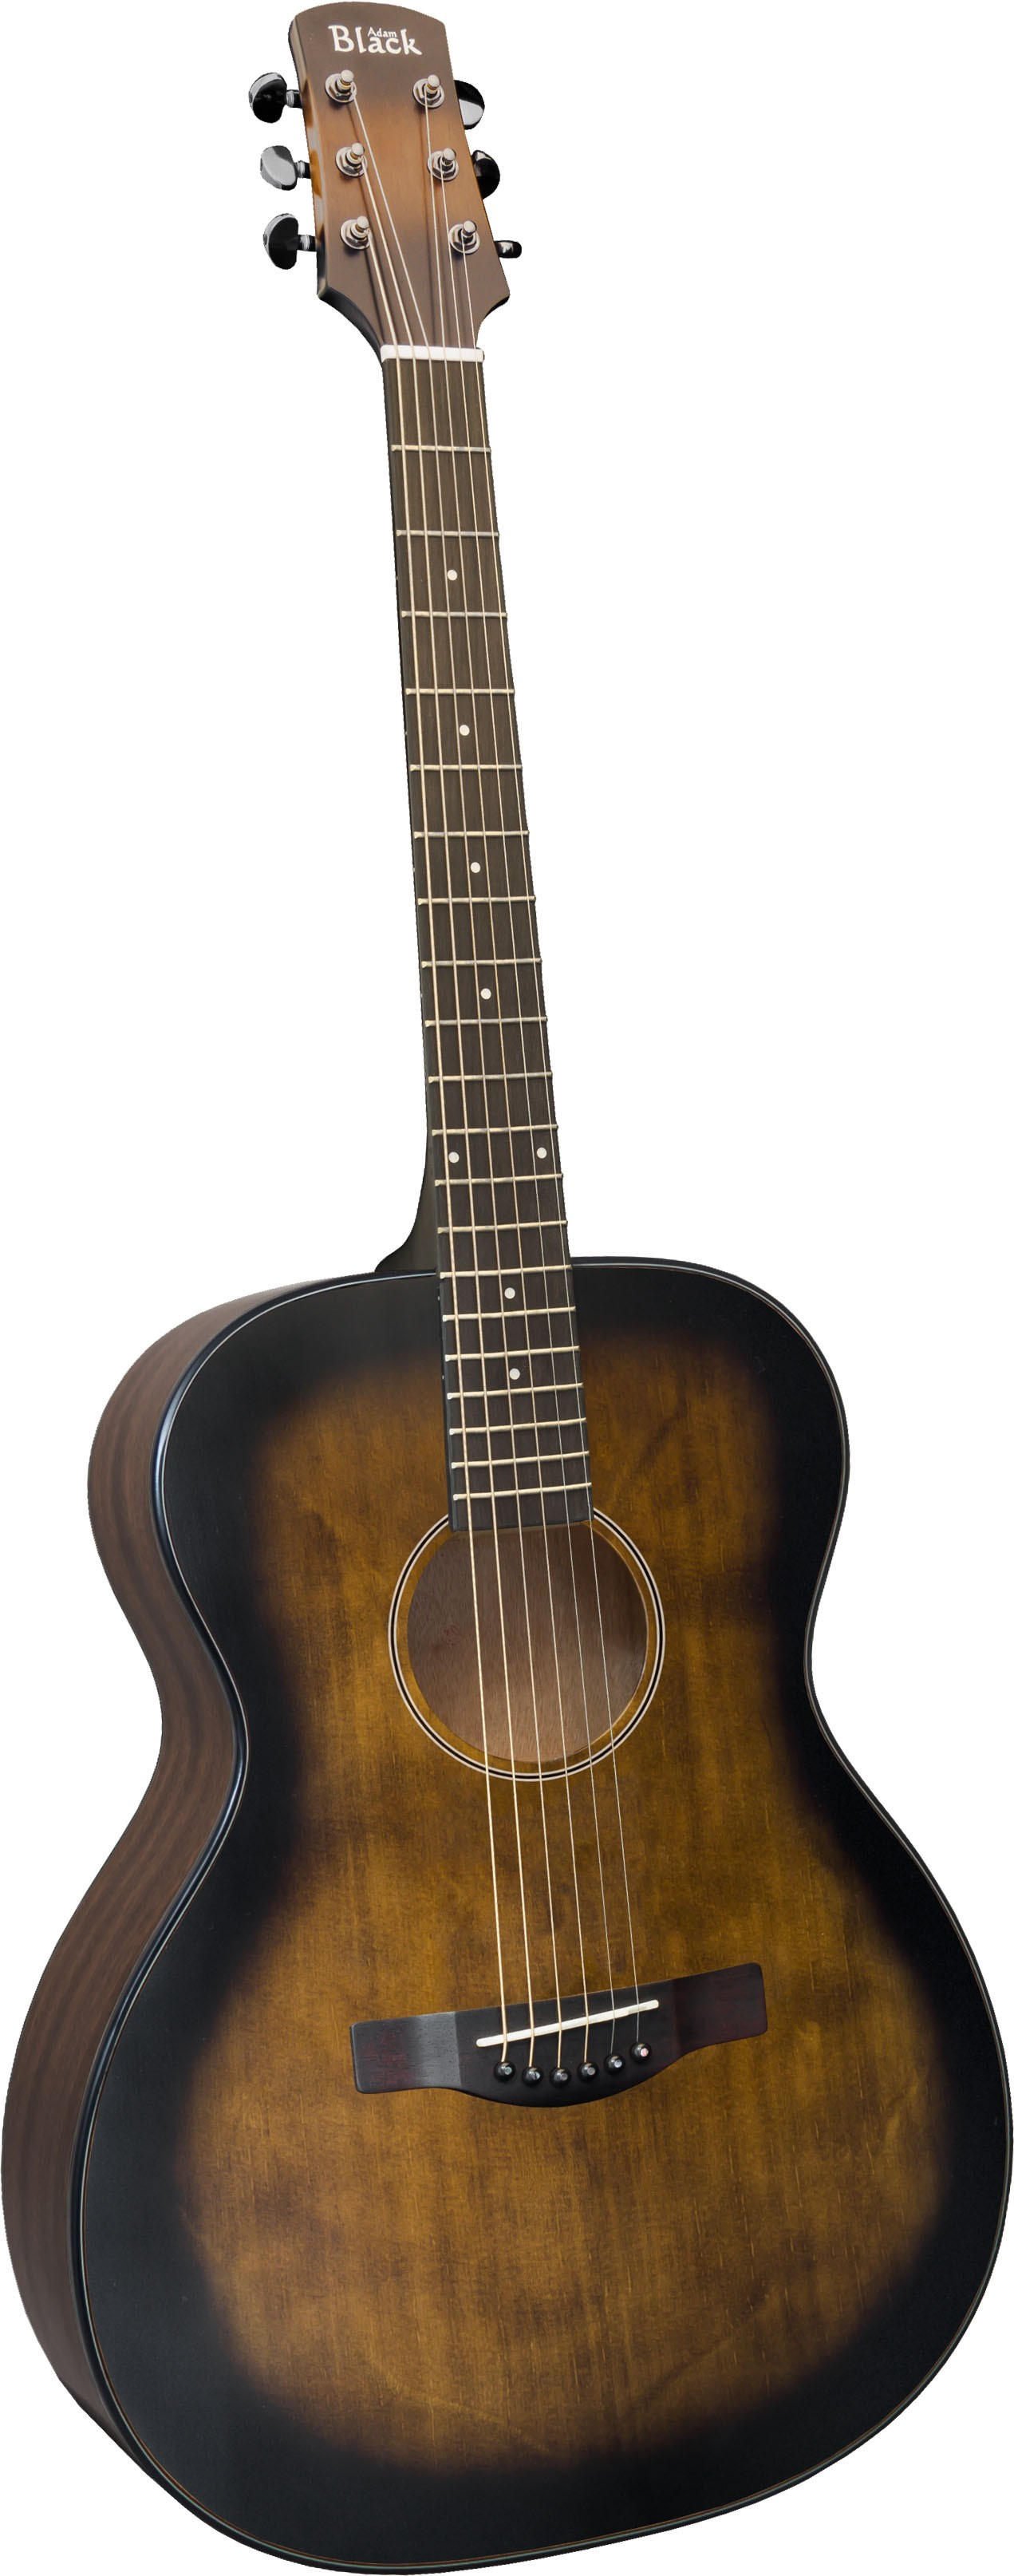 Adam Black Route 61 Mississippi Mud Burst with Gigbag